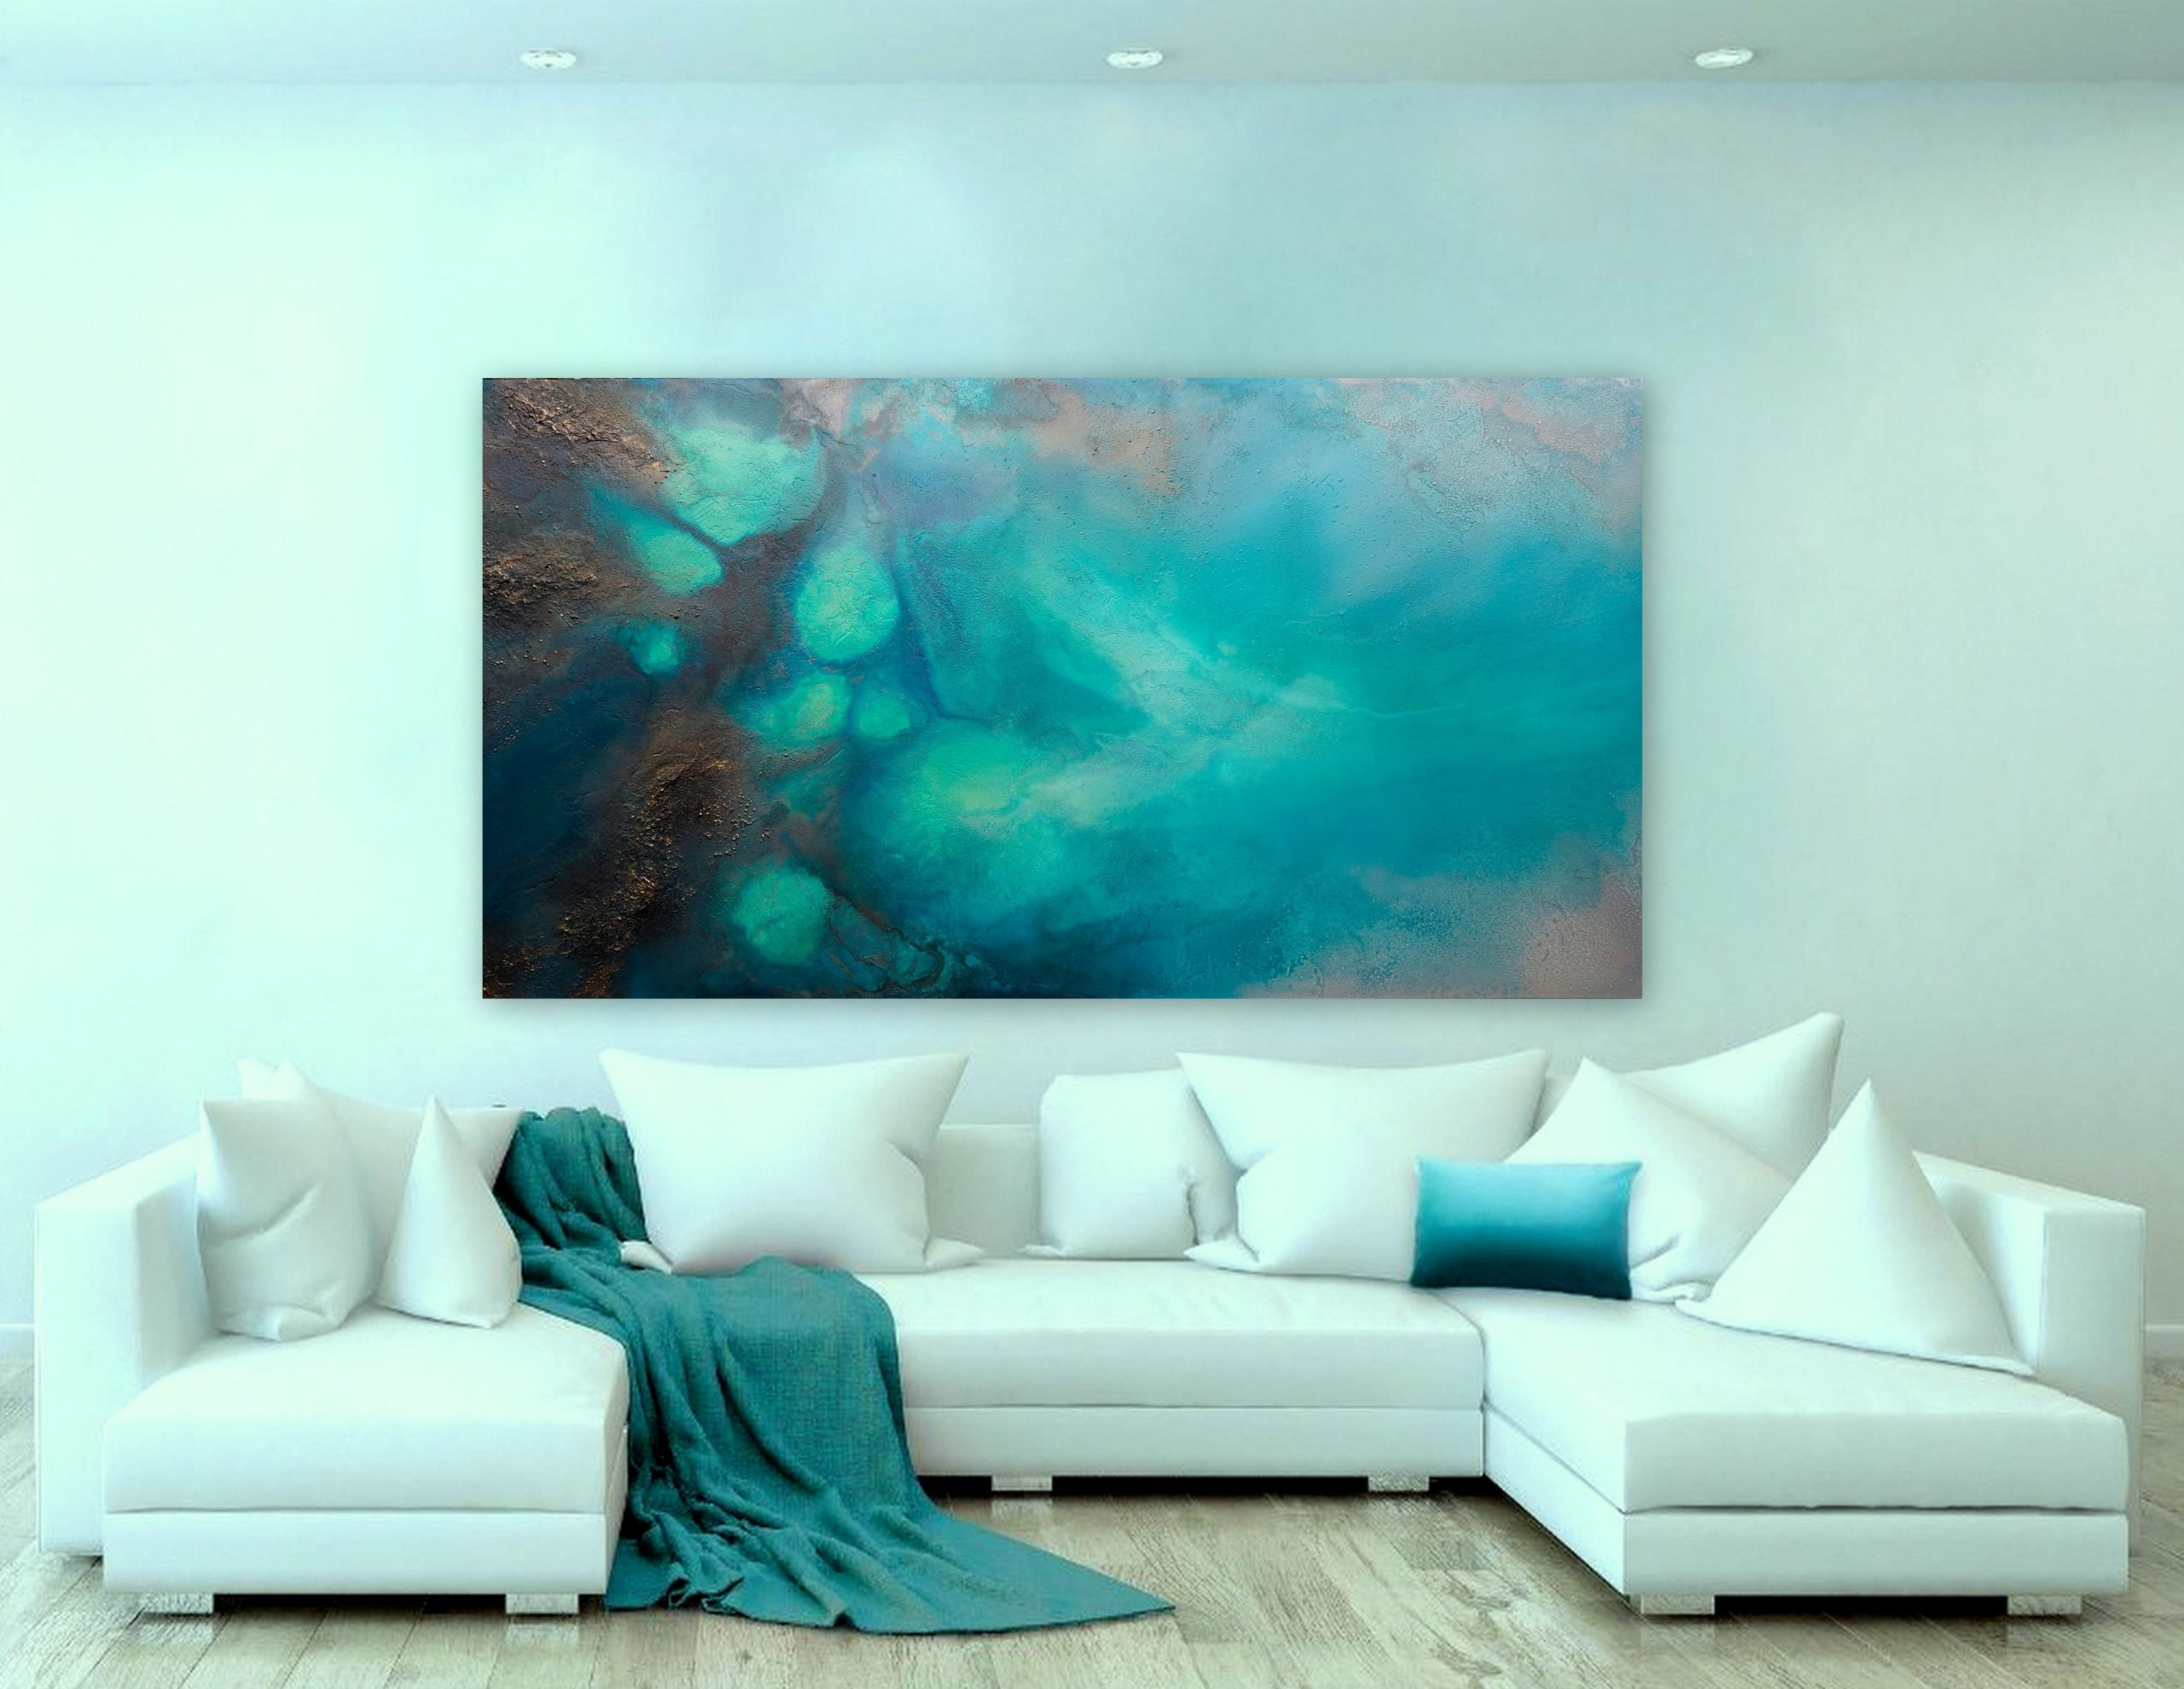 Large Painting For Sale Petra Meikle De Vlas3